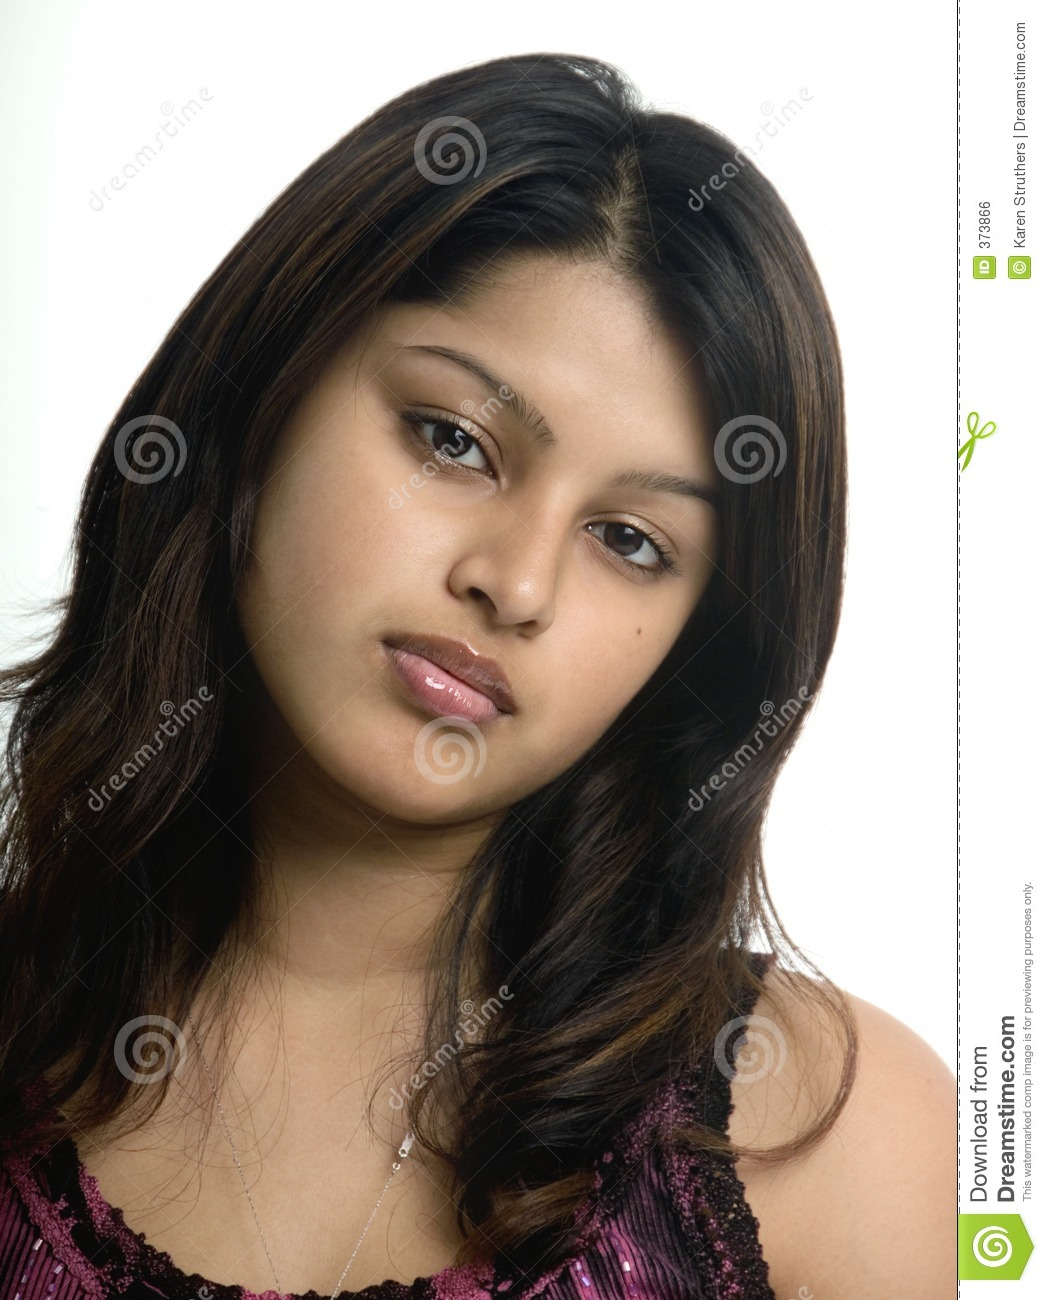 Lovely young woman